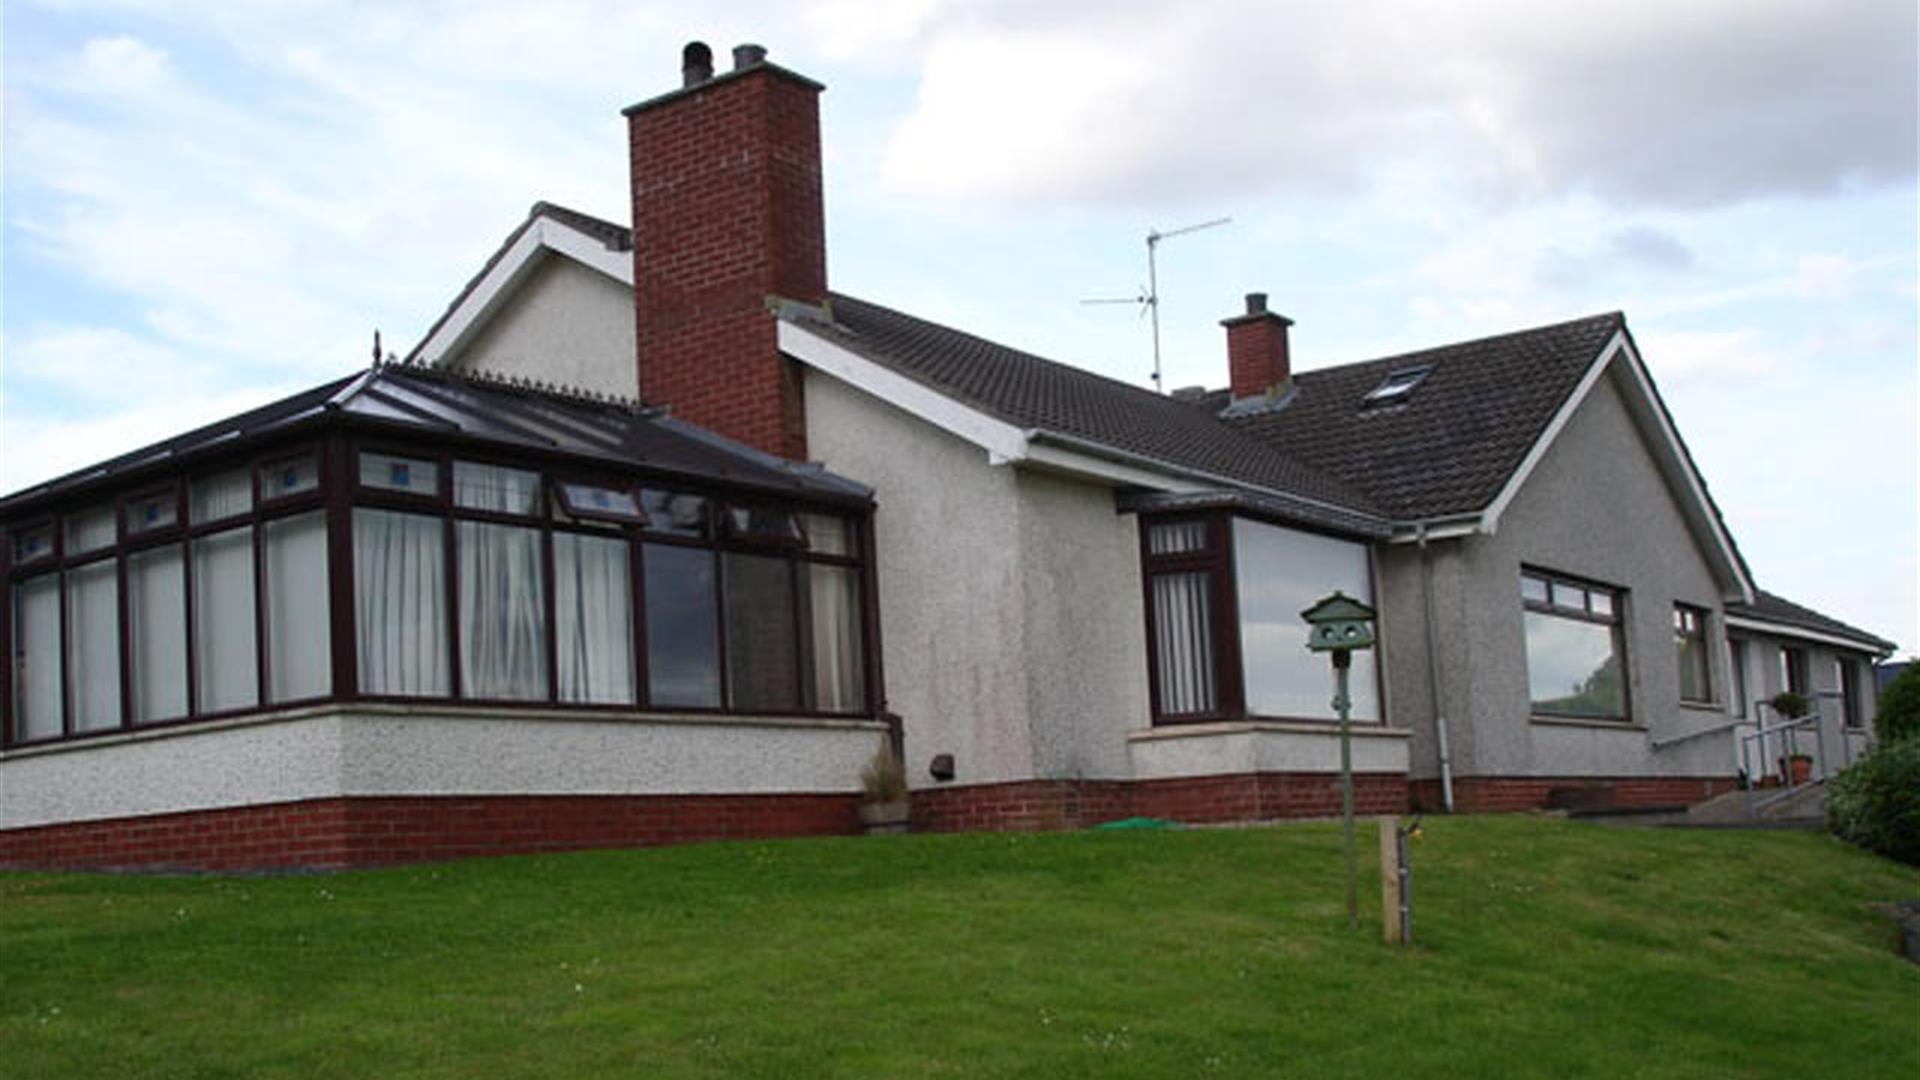 Image shows outside view of the property with sun room